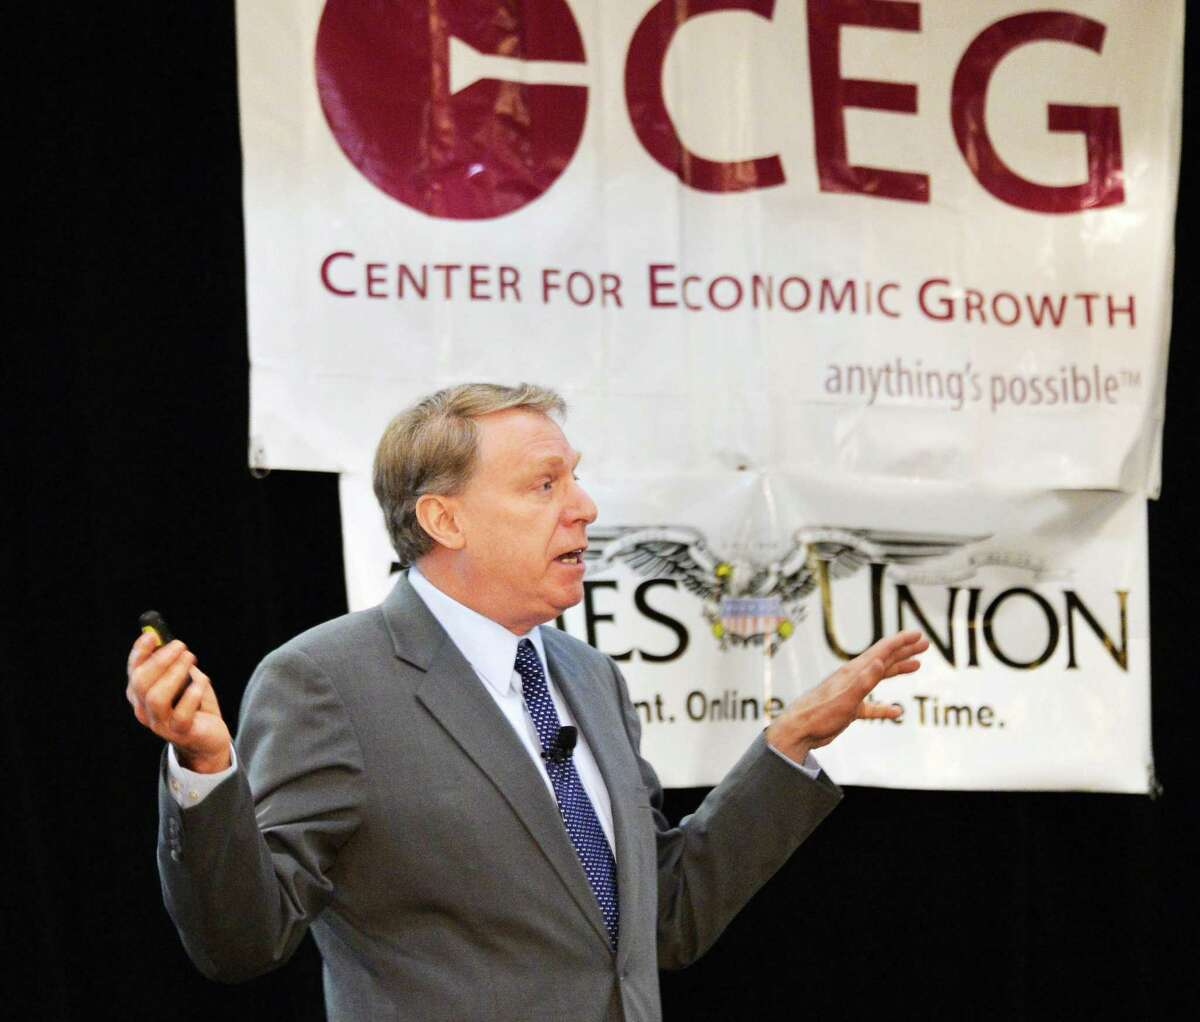 Keynote speaker Dr. Norman Jacknis,director of Cisco's IBSG Public Sector Group, addresses CEG's 17th annual Technology Awards in Colonie Wednesday June 26, 2013. (John Carl D'Annibale / Times Union)